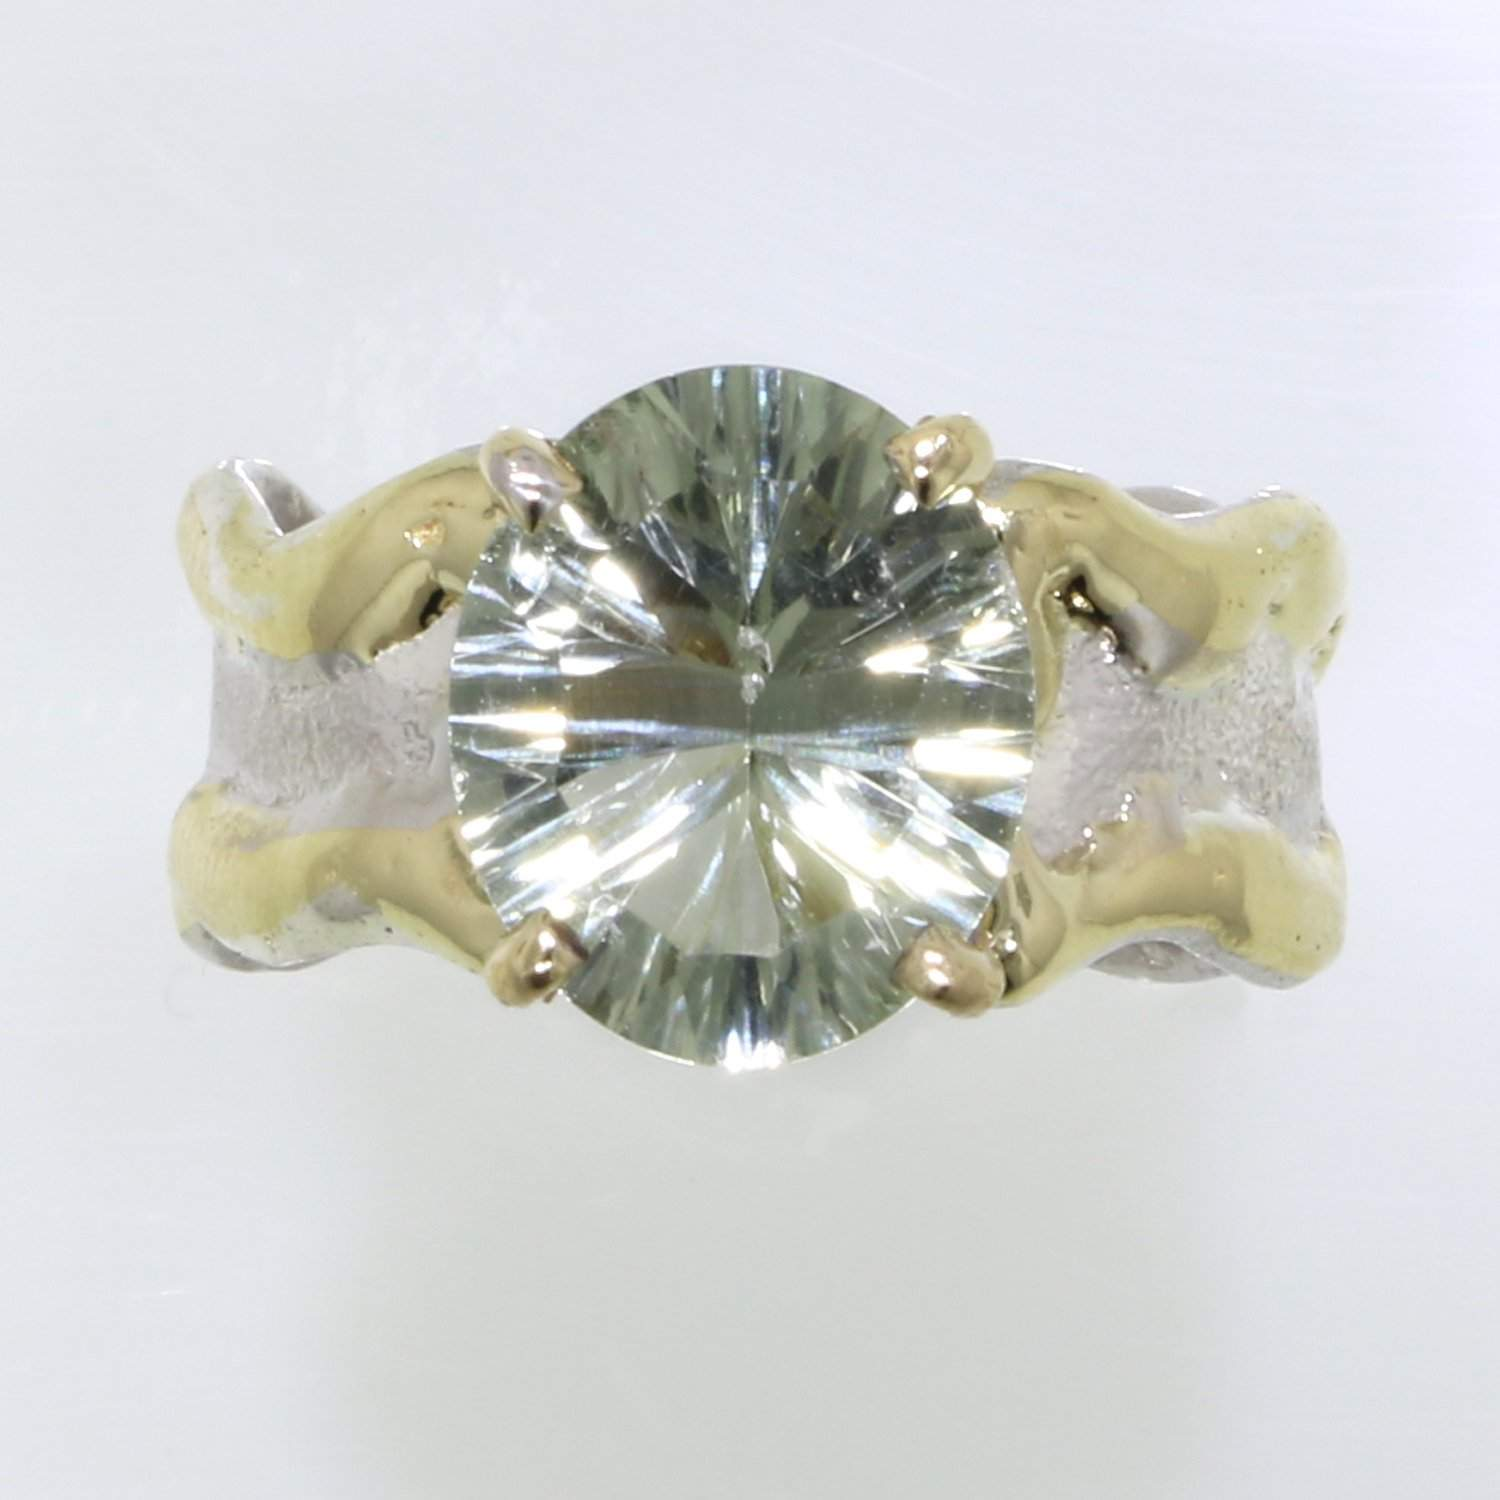 14K Gold & Crystalline Silver Prasiolite Ring - 31936-Fusion Designs-Renee Taylor Gallery